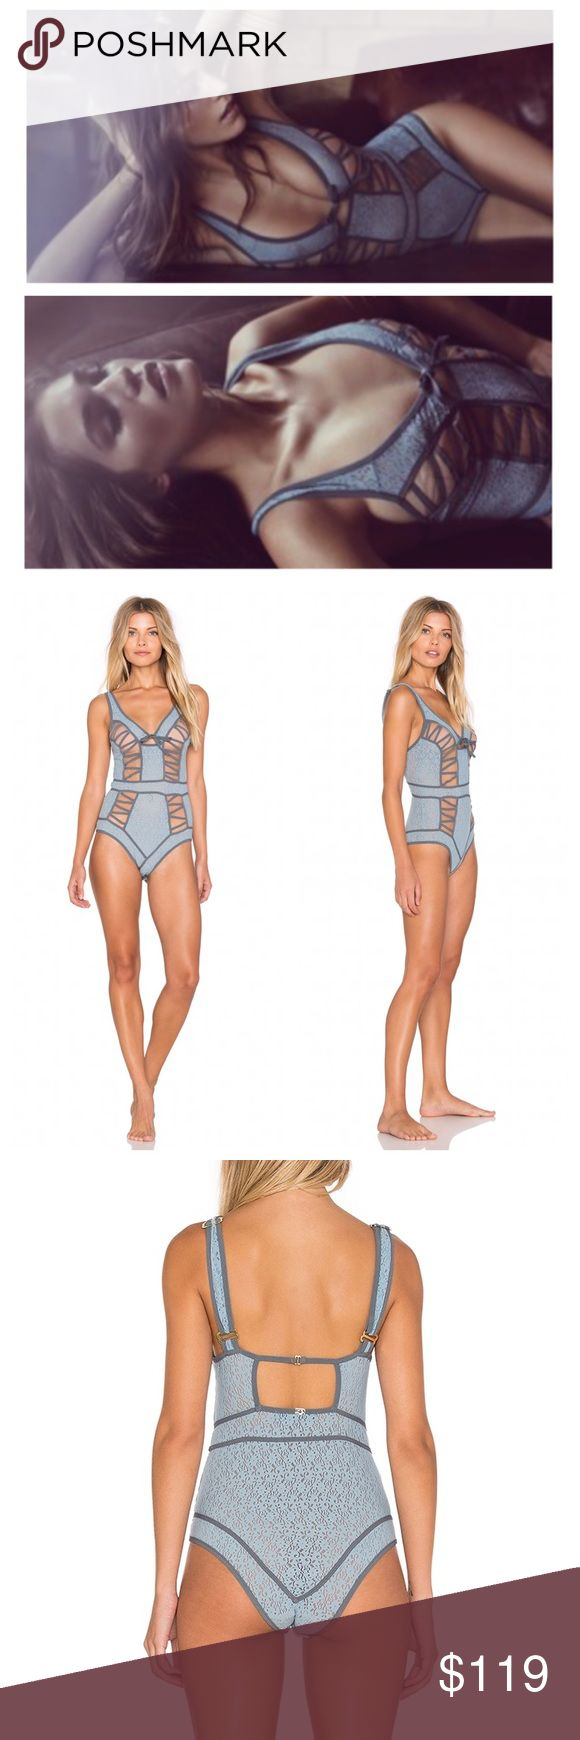 For Love & Lemons Samantha Bodysuit in Blue Illusion mesh panels punctuate the sultry, strappy design of this floral lace bodysuit from For Love & Lemons. Size M(4-6)  Nylon/spandex V-neck with center bow detail Adjustable straps Sheer floral lace body, front illusion mesh panels Solid strap detailing throughout, square back Back cutout with hook closure, bikini fit in rear Lined gusset with hook-and-eye closure For Love and Lemons Intimates & Sleepwear